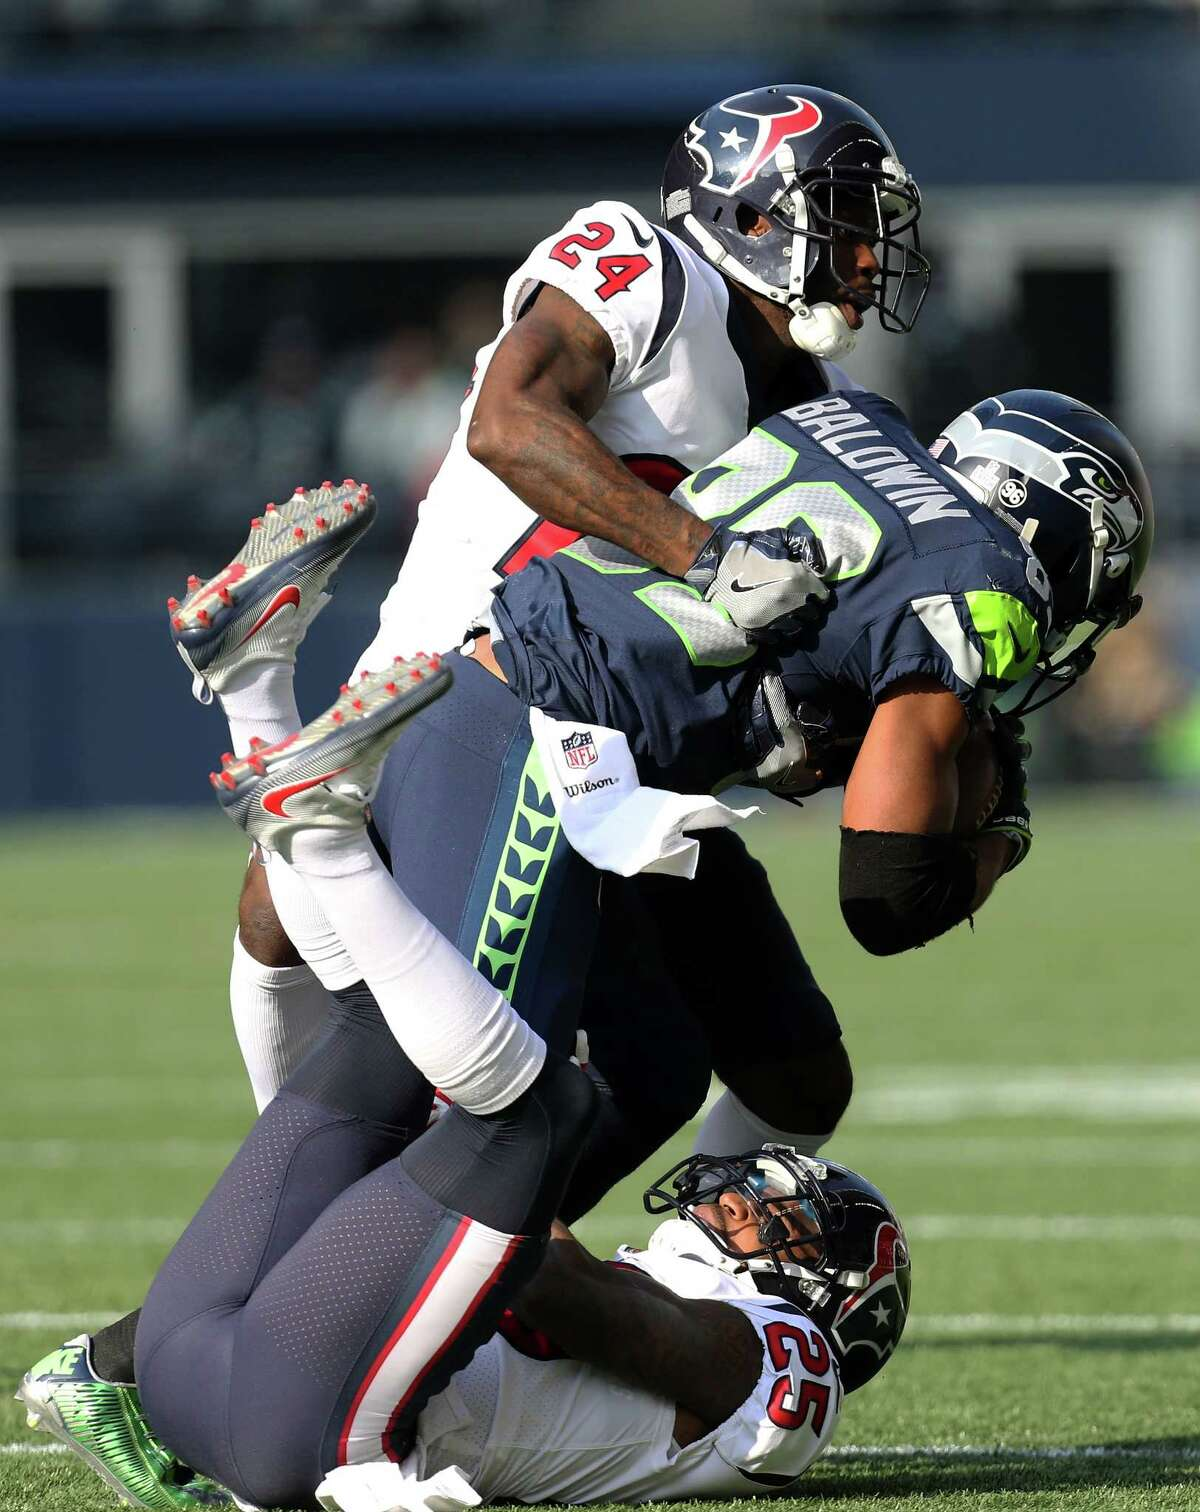 Houston Texans cornerbacks Johnathan Joseph (24) and Kareem Jackson (25) tackle Seattle Seahawks wide receiver Doug Baldwin (89) during the first half of the game at CenturyLink Field Sunday, Oct. 29, 2017, in Seattle. The Seahawks won 41-38.